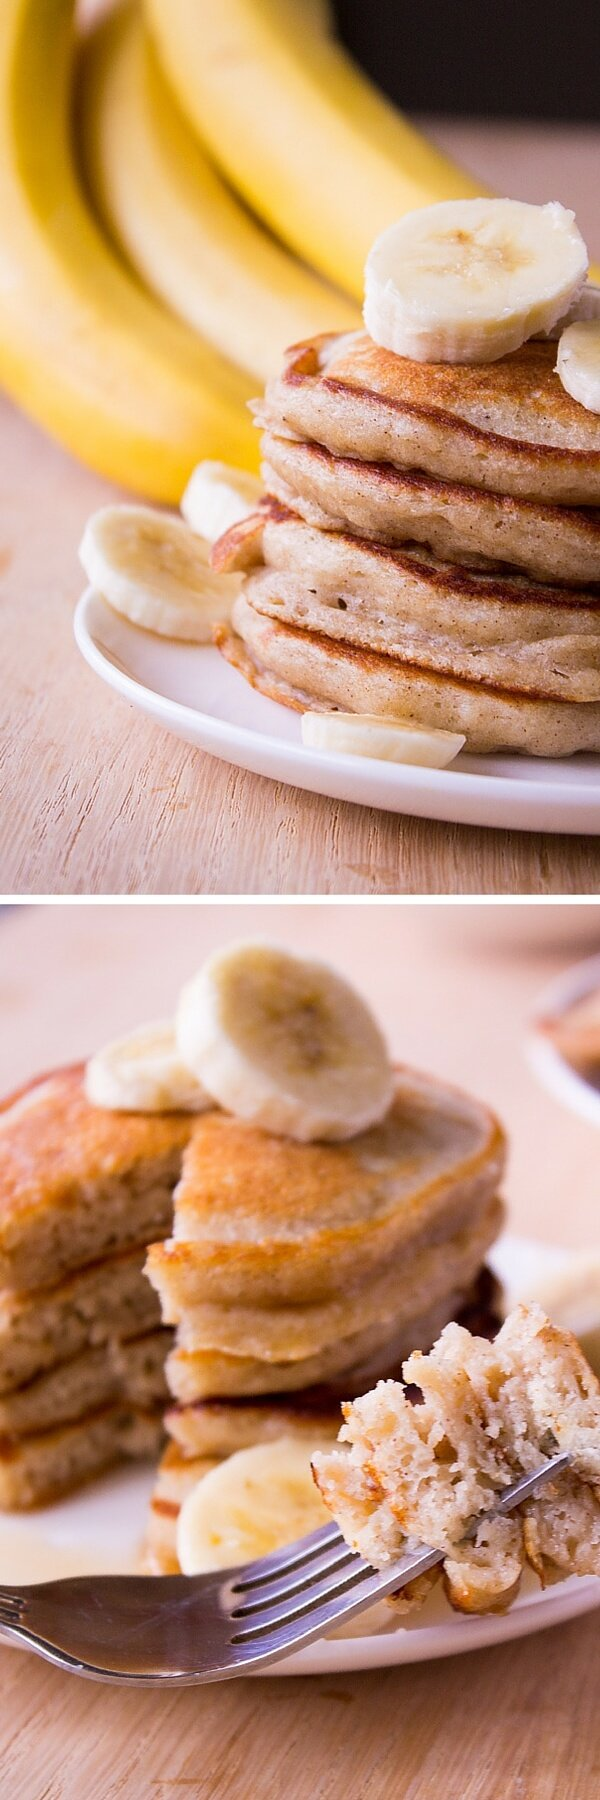 Light & Fluffy Banana Pancakes. These are like banana bread in pancake form. Super moist, filled with vanilla & cinnamon flavor - Start your morning with this easy recipe! www.justsotasty.com